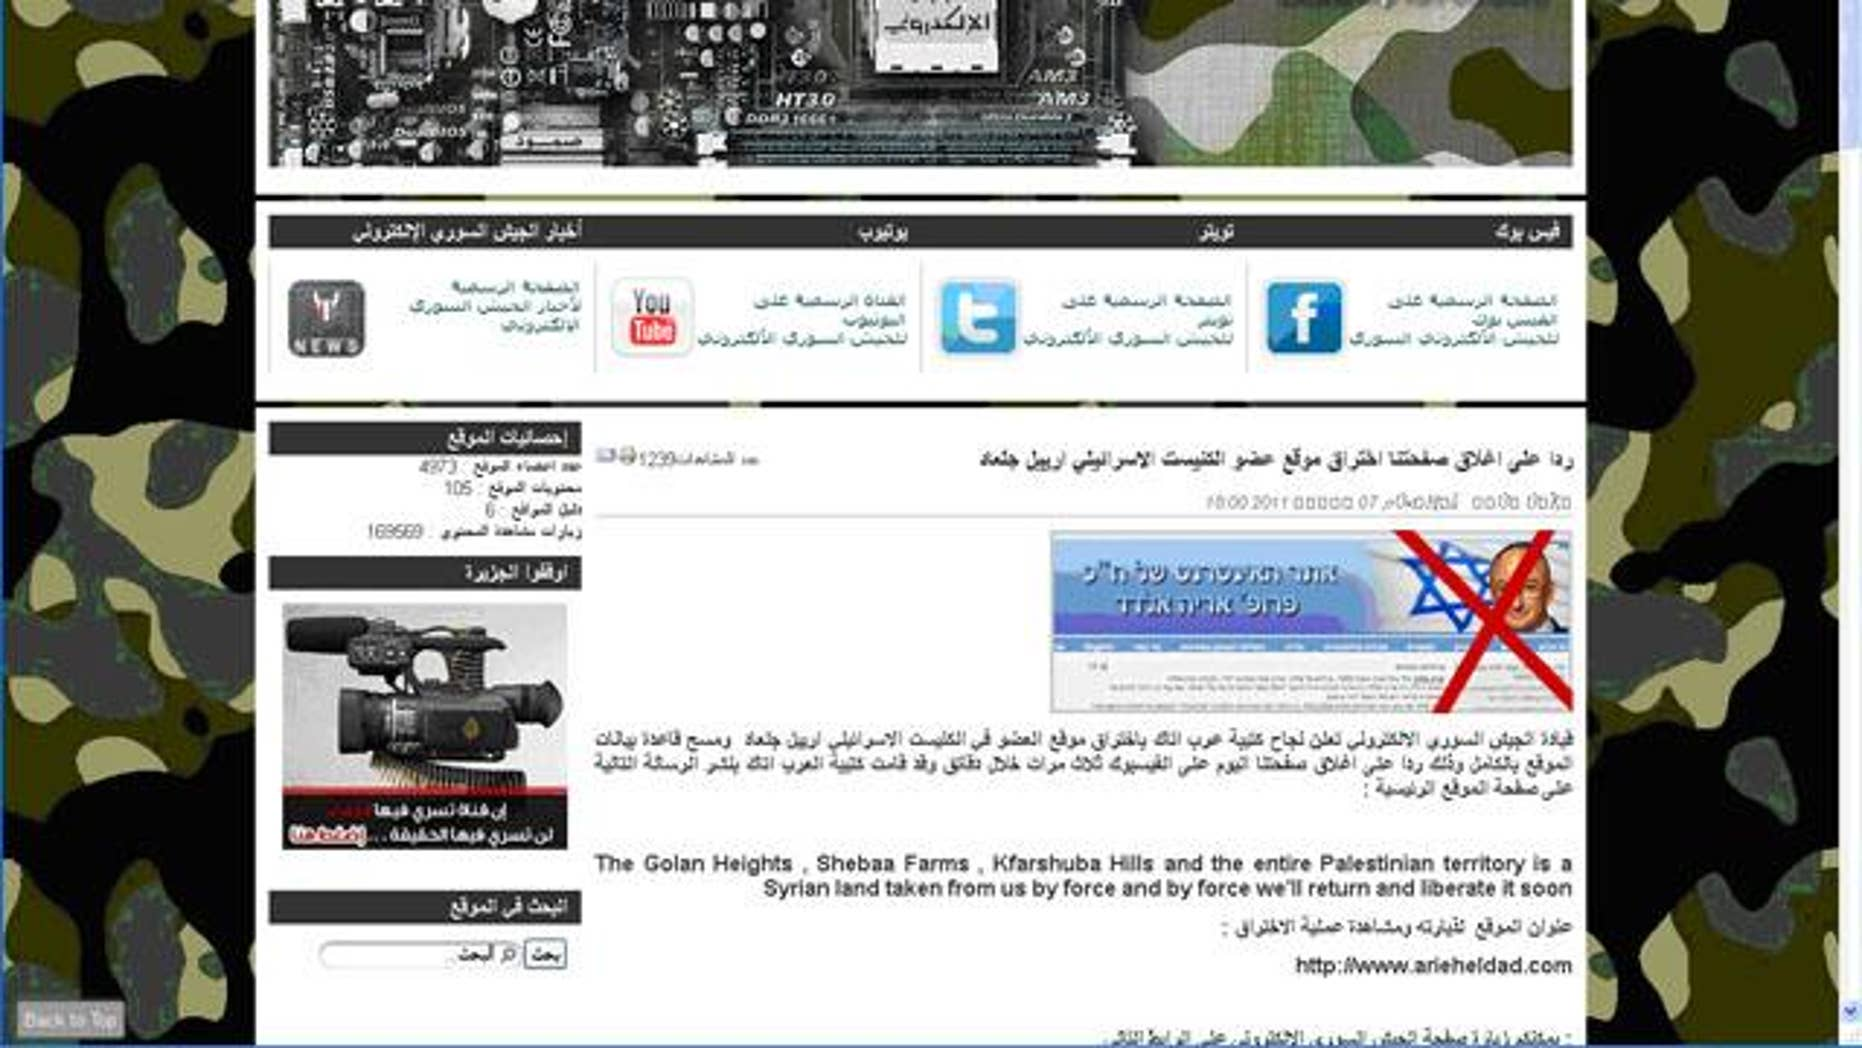 The website of the Syrian Electronic Army, a shadowy, pro-Assad group which has orchestrated cyber attacks on President Obama and Oprah's Facebook pages.